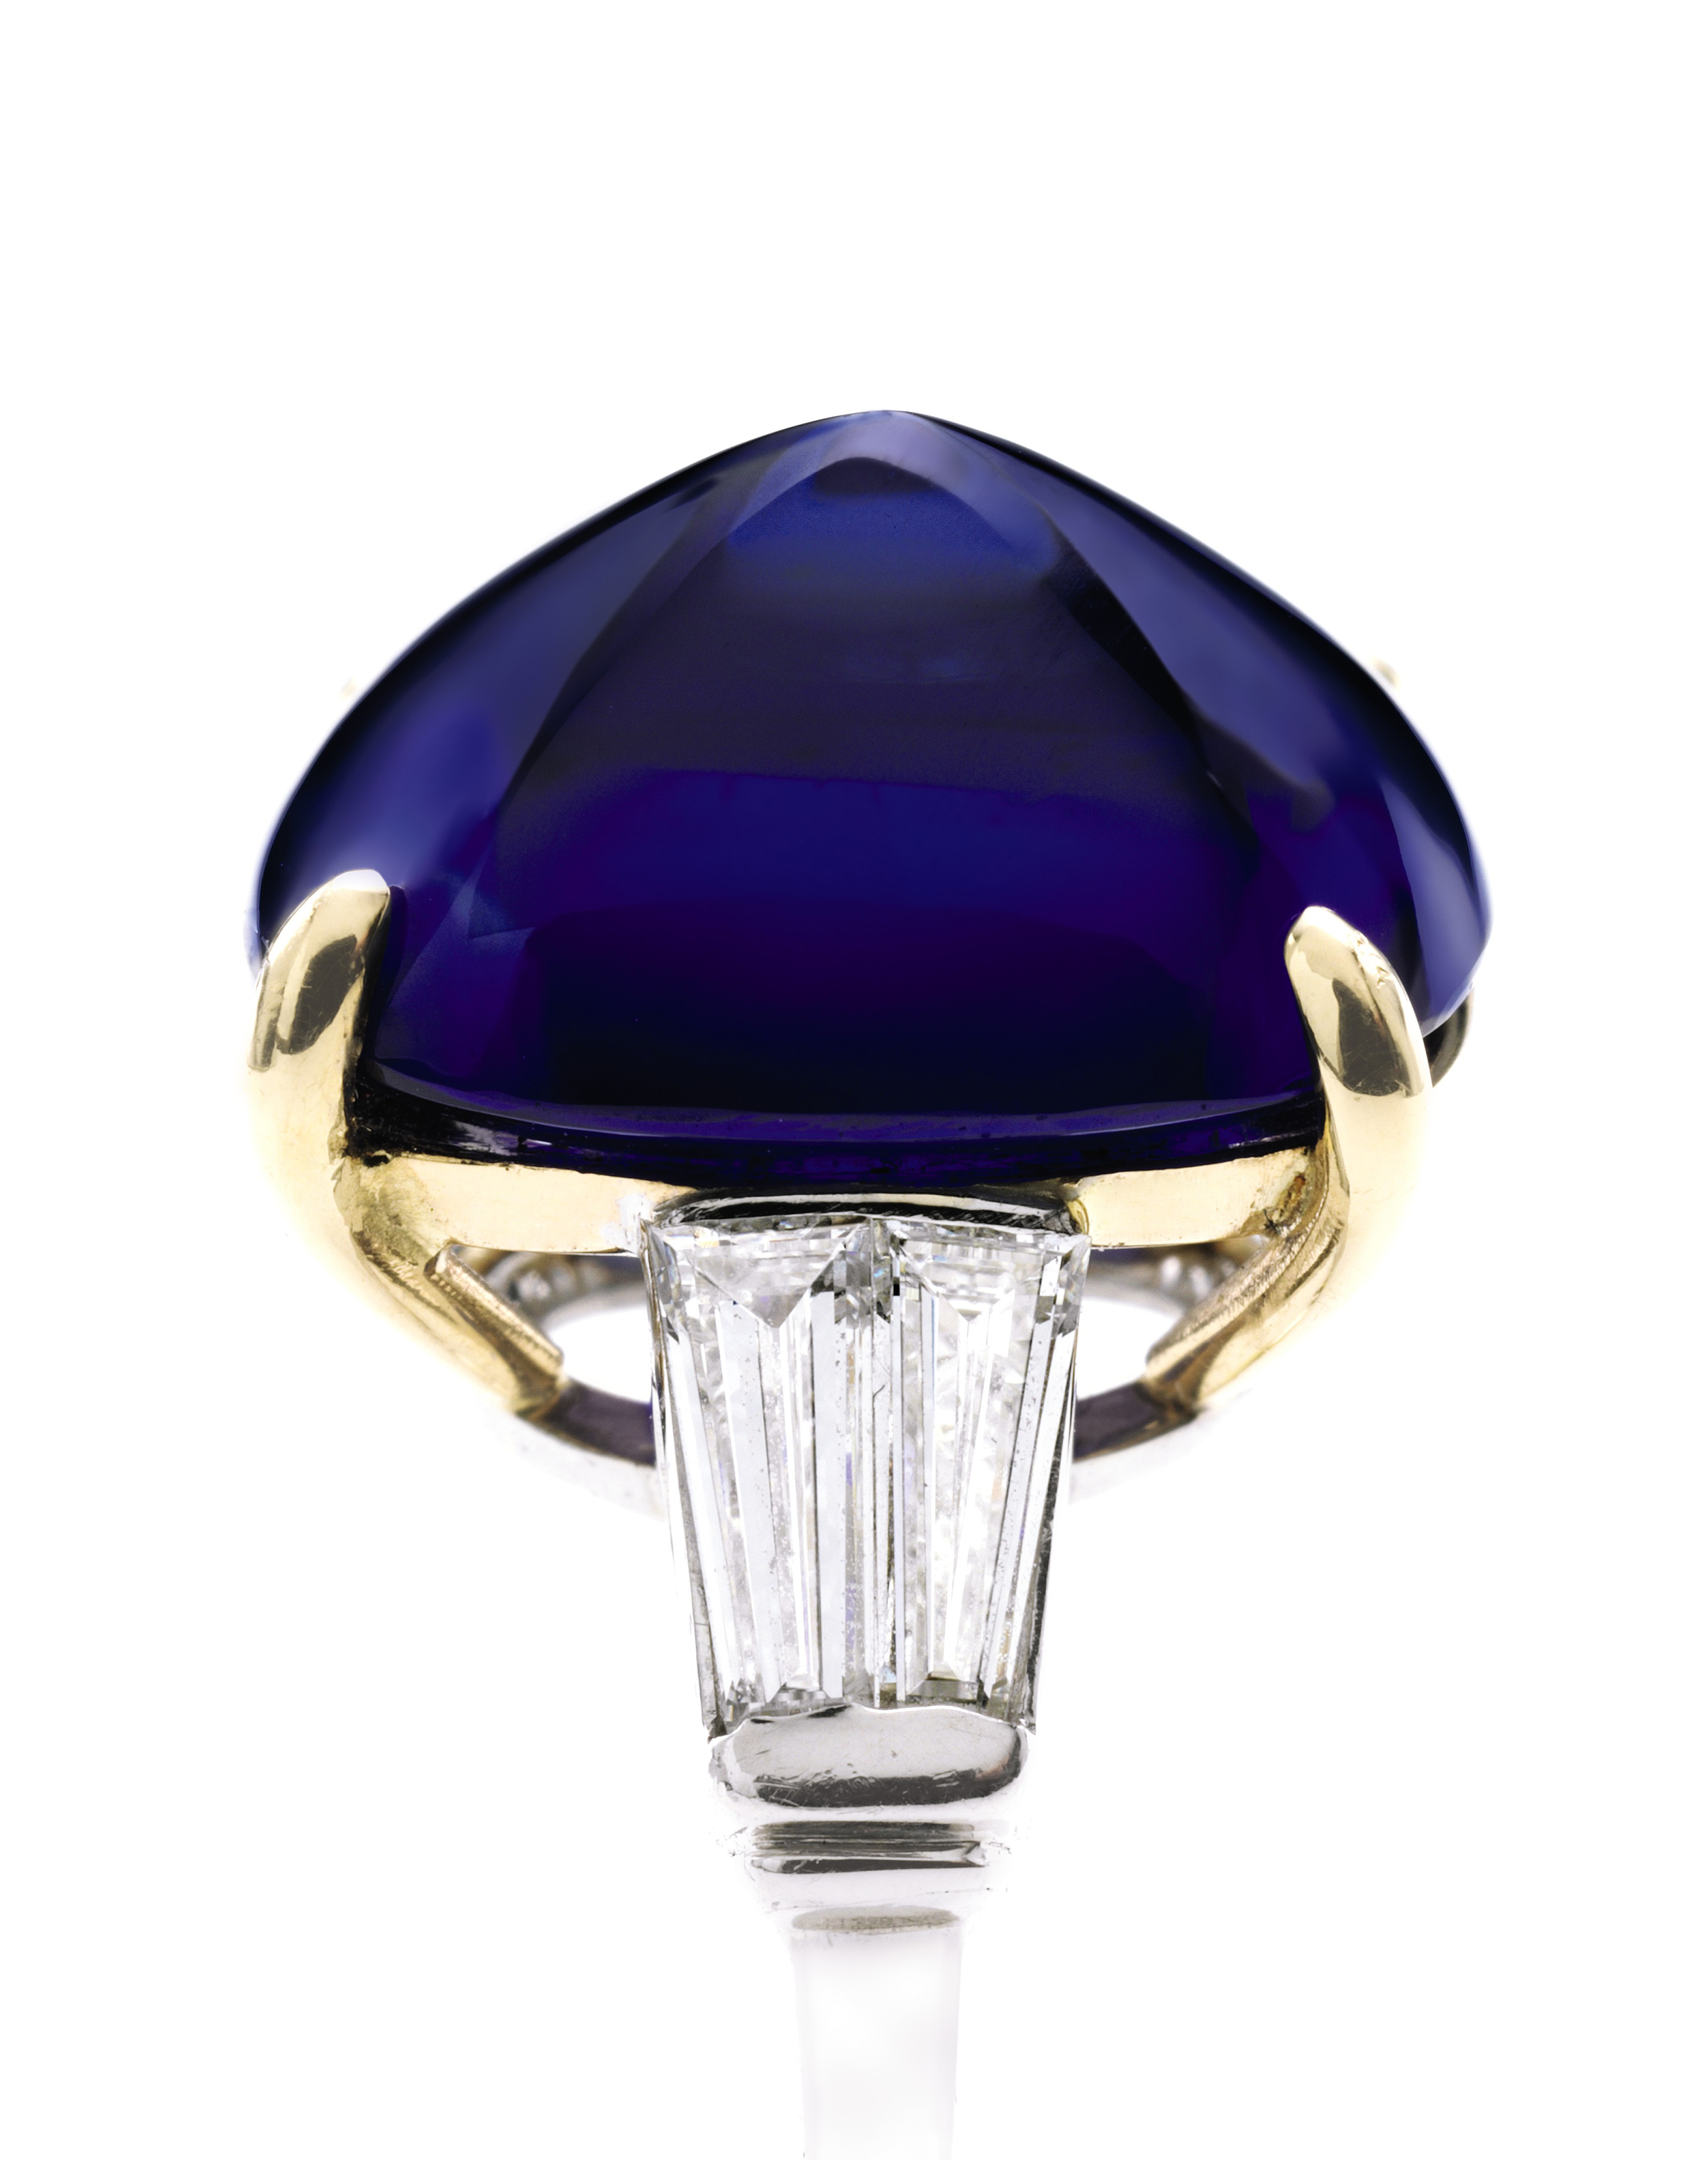 Auctions: Magnificent Jewels at Sotheby's New York